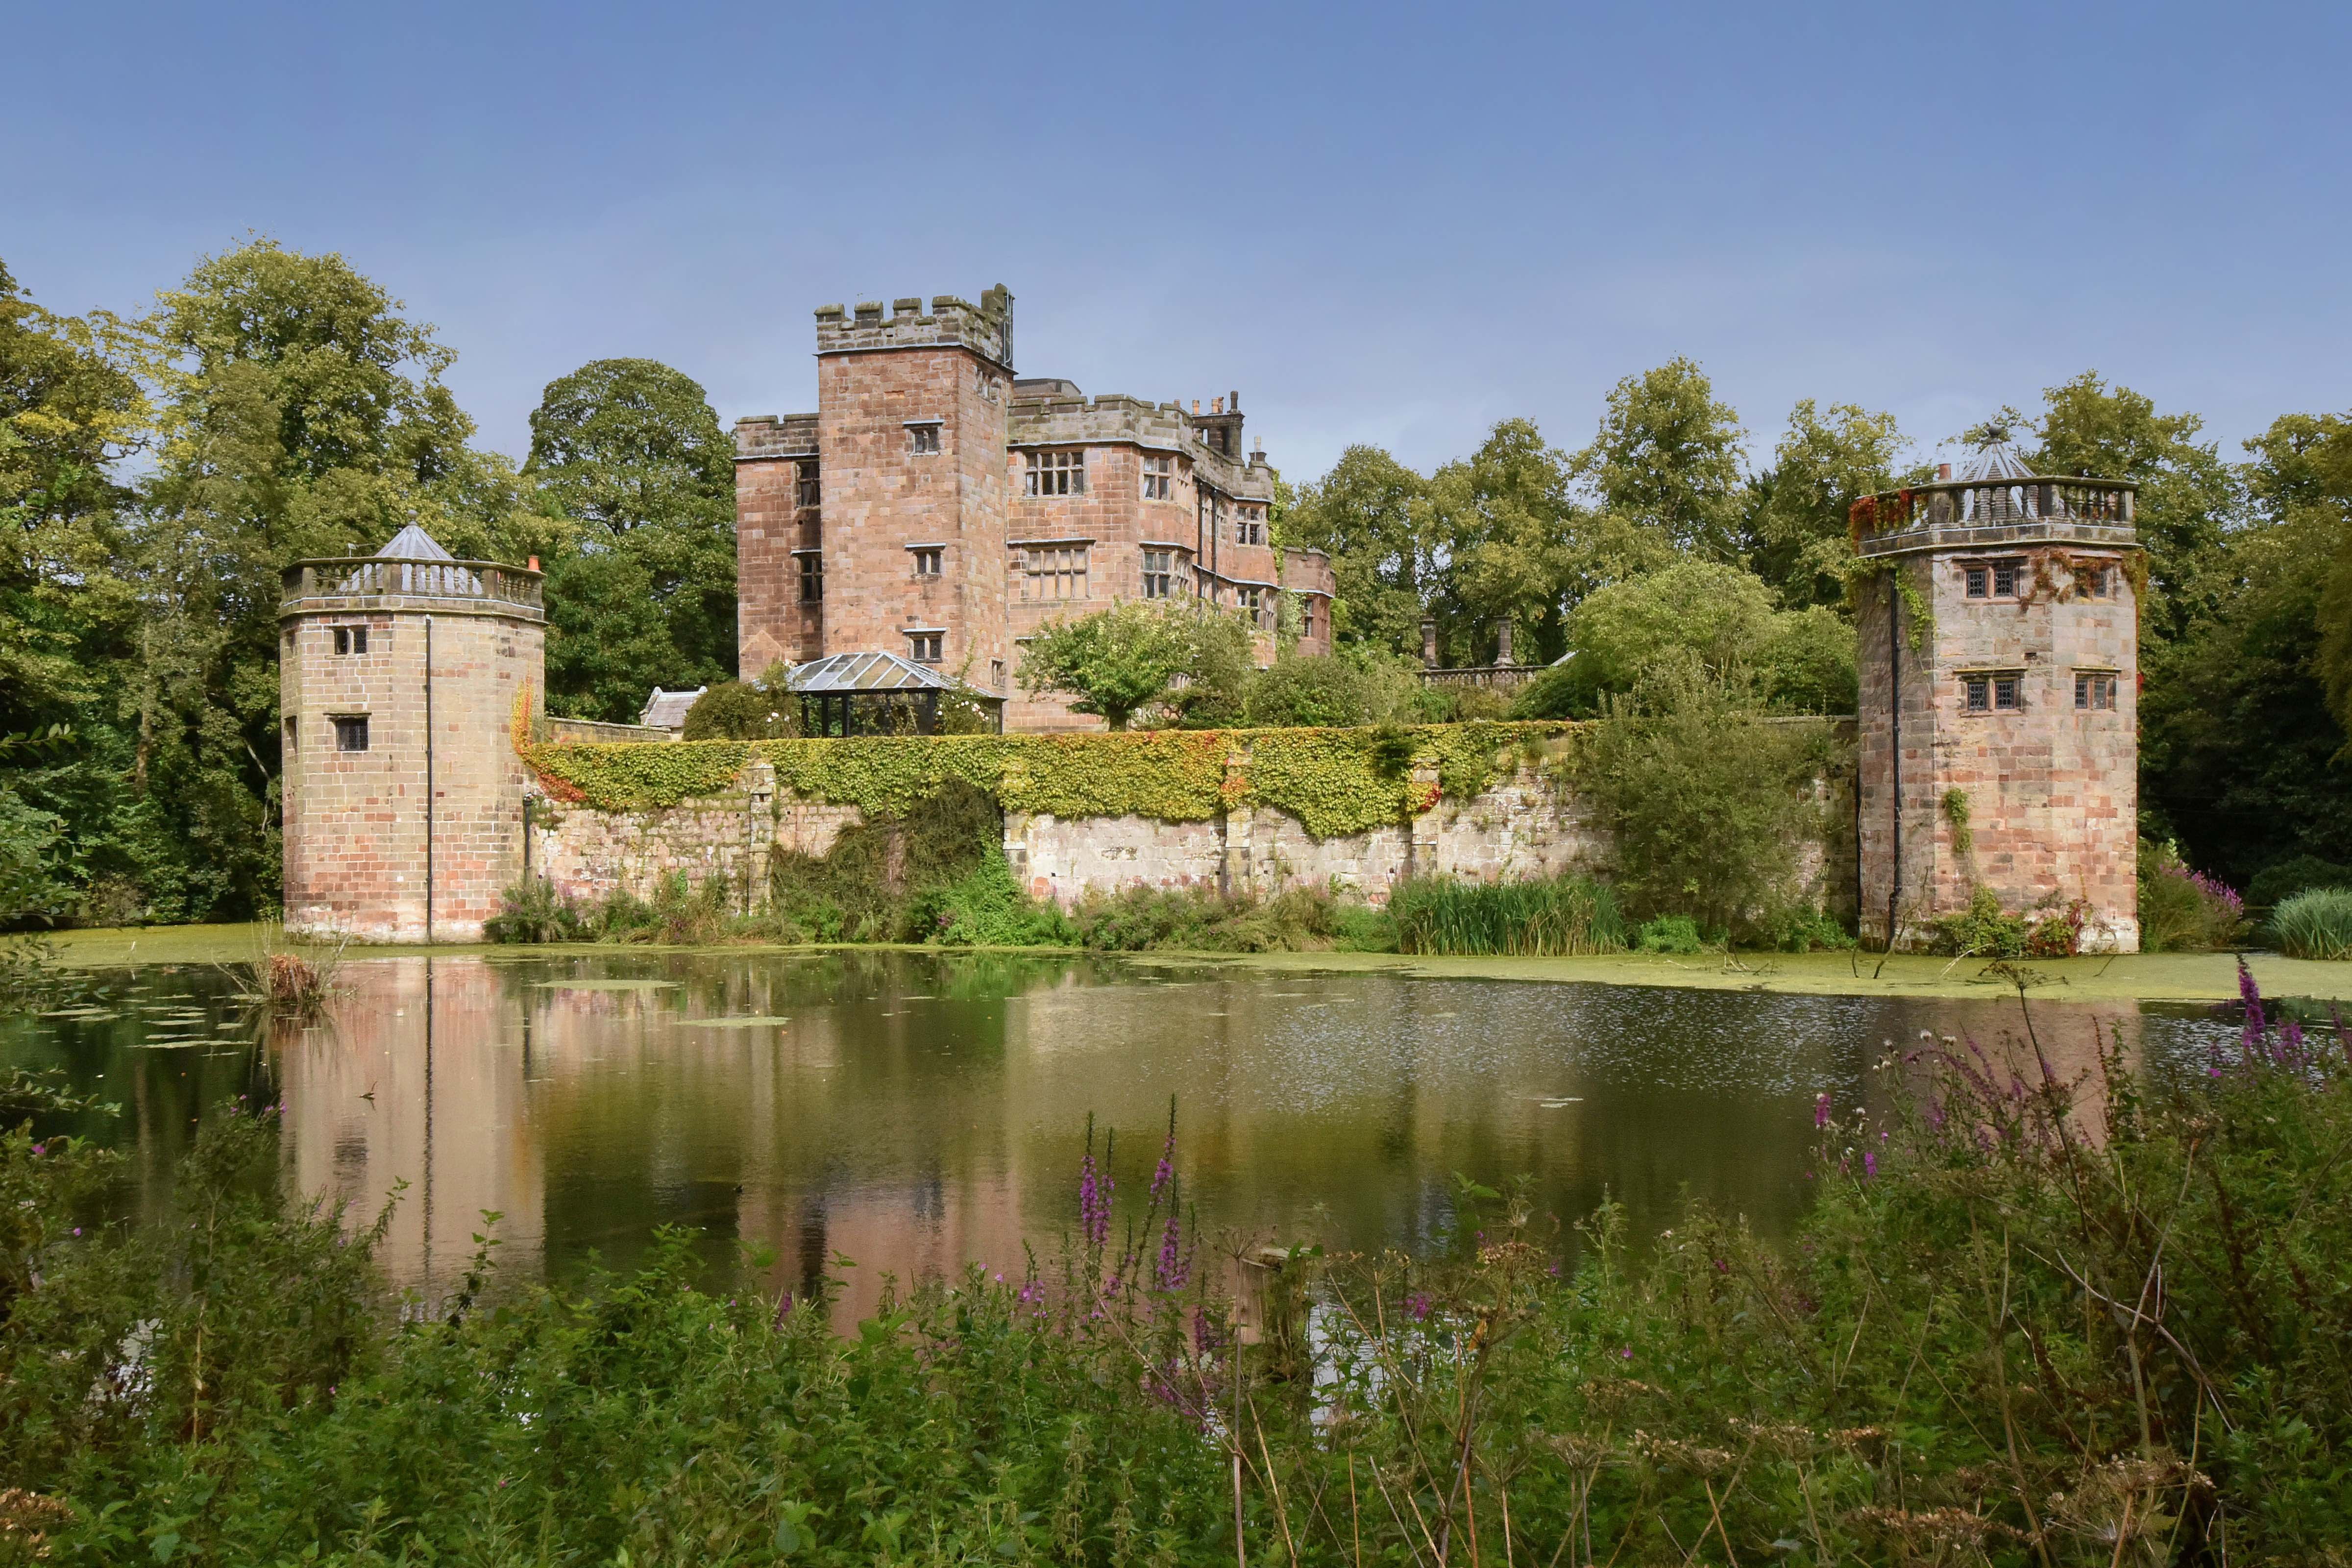 A majestic Grade I-listed moated castle in Staffordshire